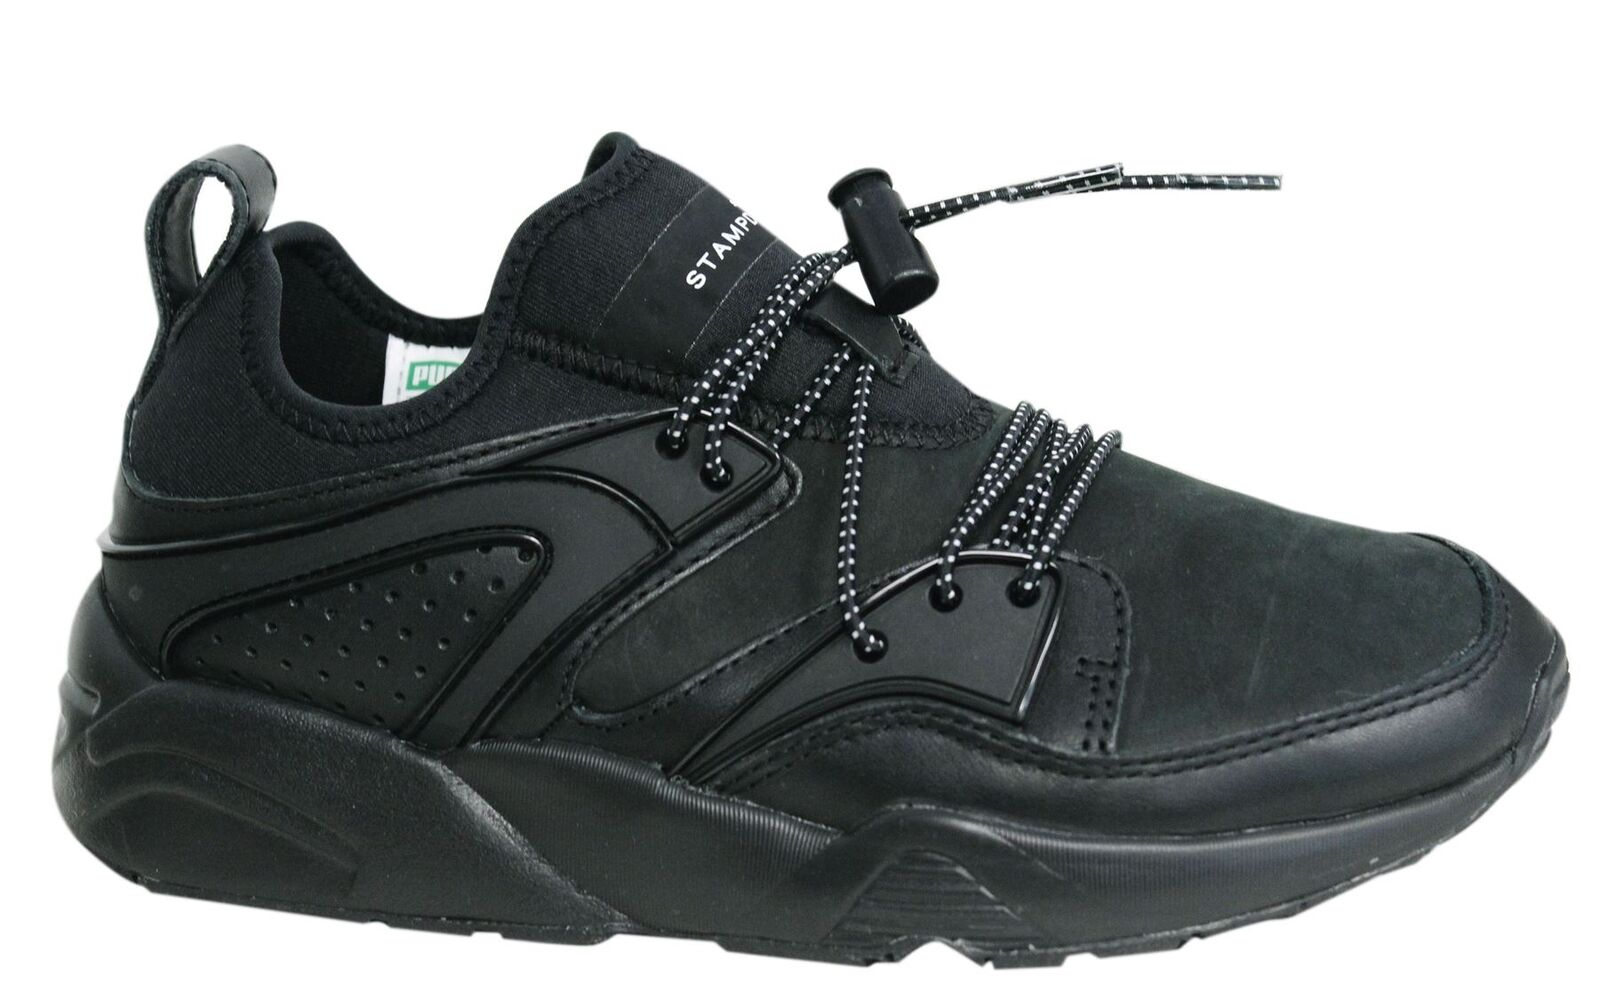 Puma Blaze of Glory X Stampd Toggle jusqu 'en CUIR NOIR Baskets Homme 359806 02 U8